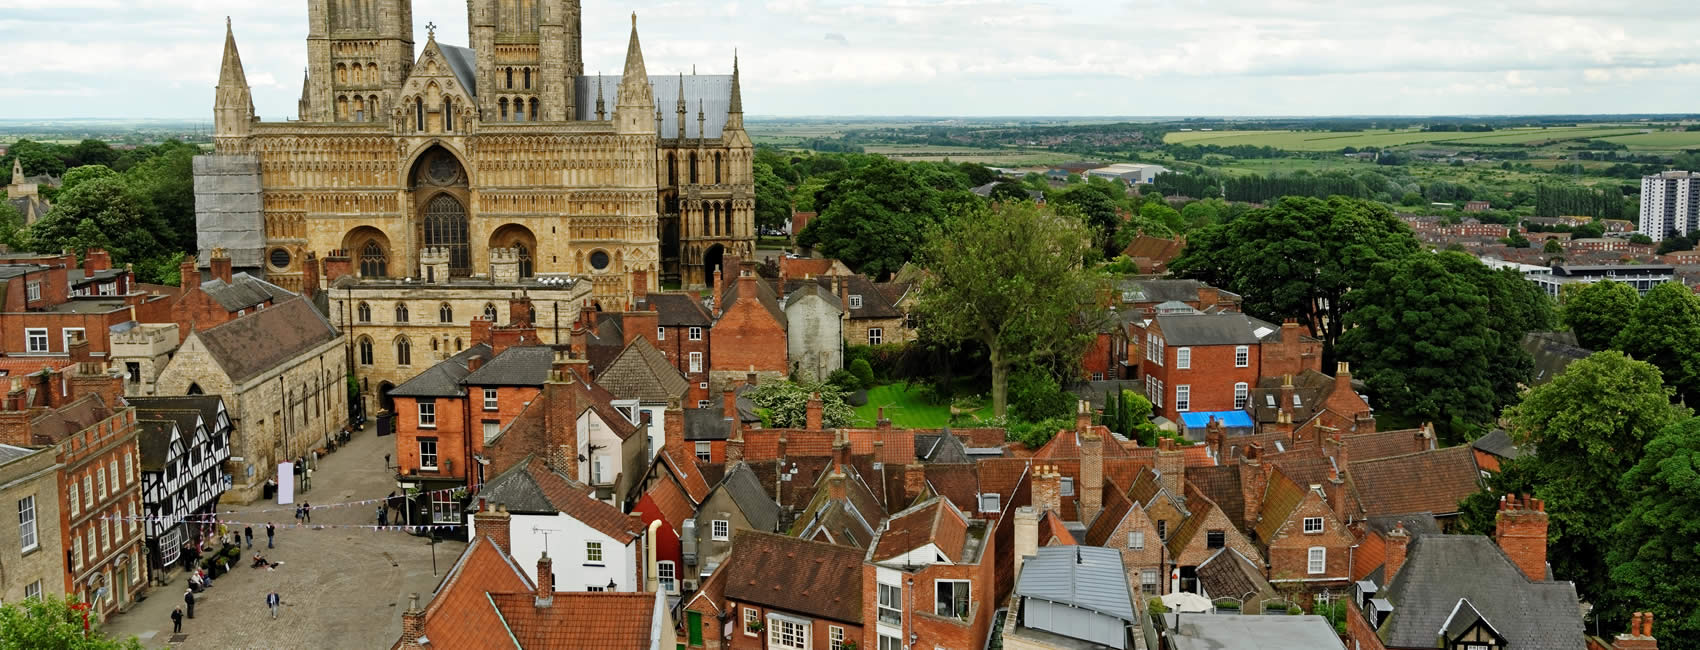 aerial view of the city of Lincoln in East Midlands